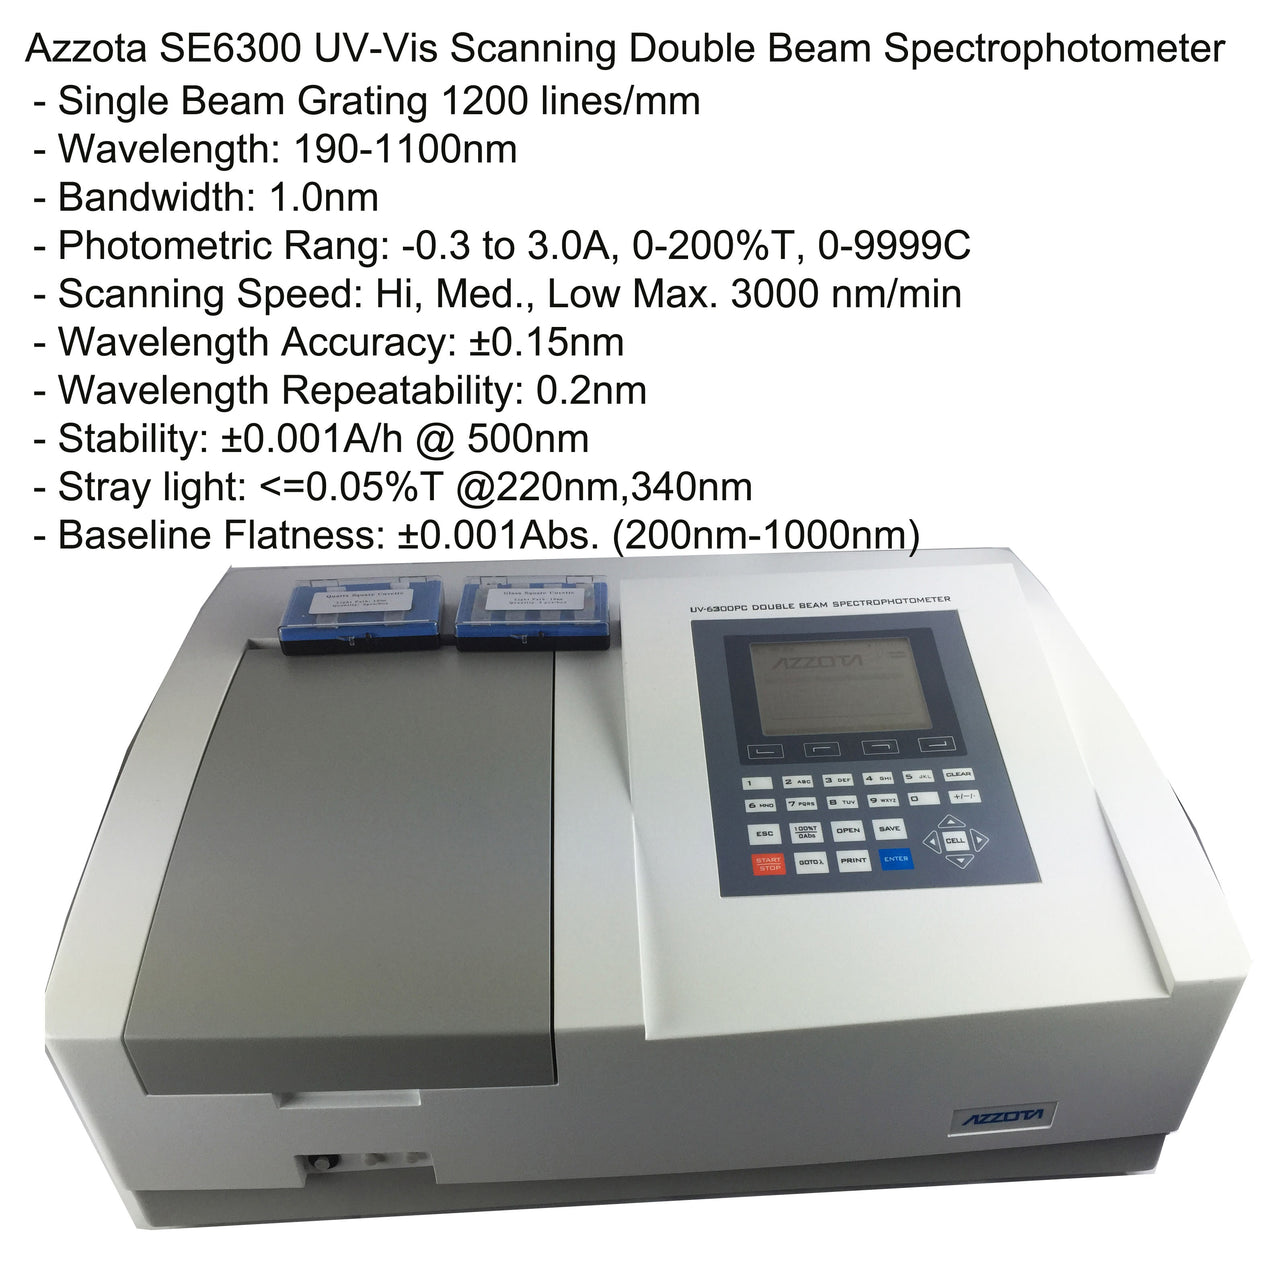 SE6300PC Double Beam Scanning UV-VIS Spectrophotometer with software